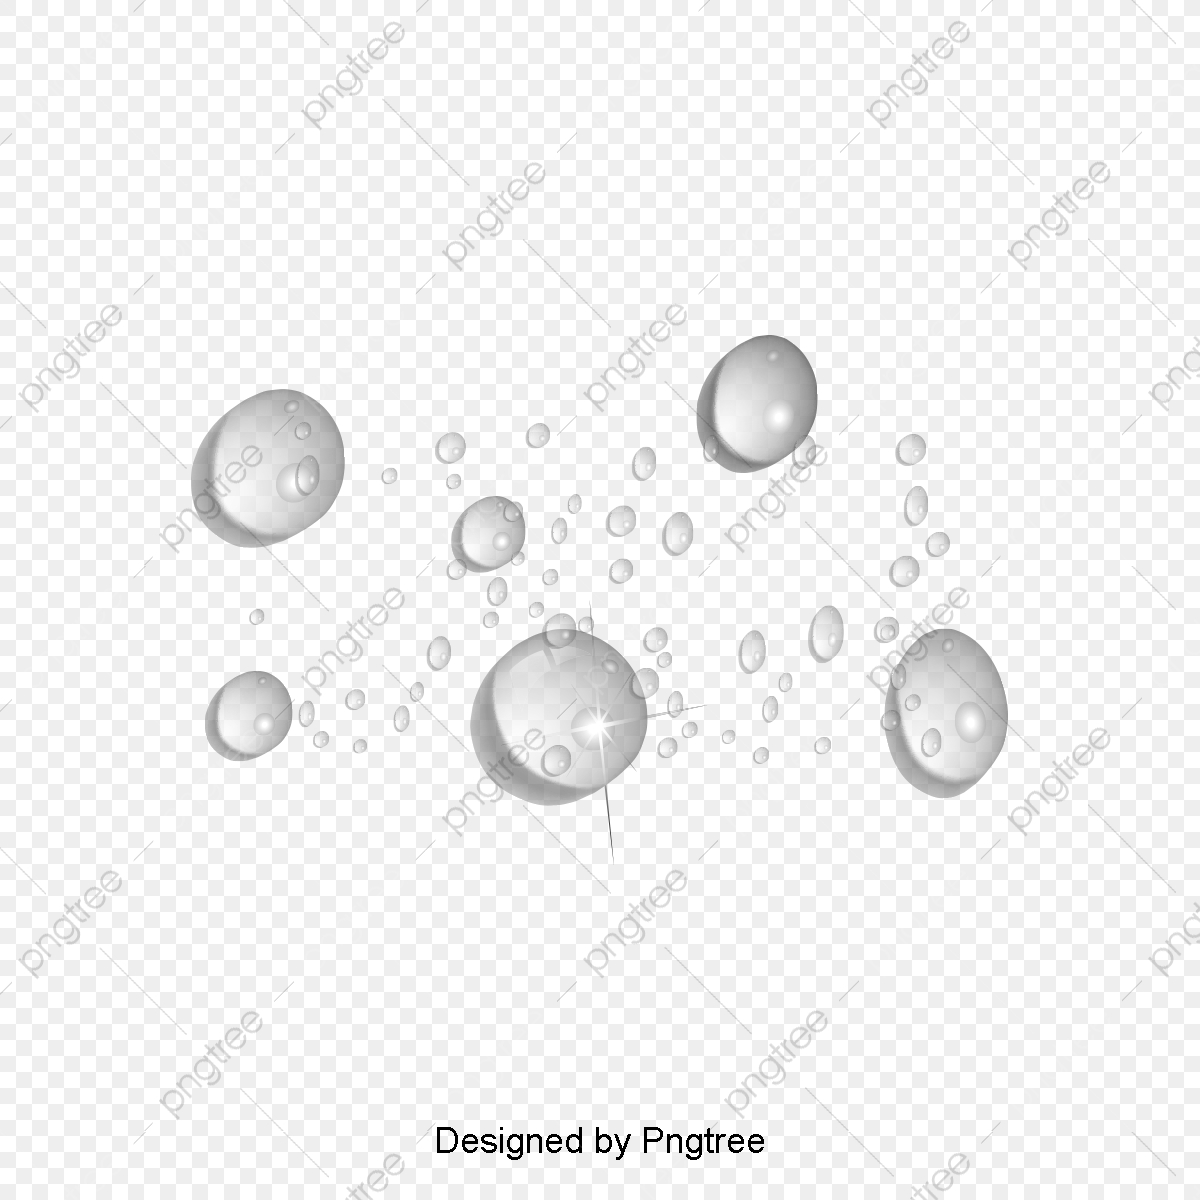 Simple Droplet Design Elements, Stereoscopic 3d Water Droplets